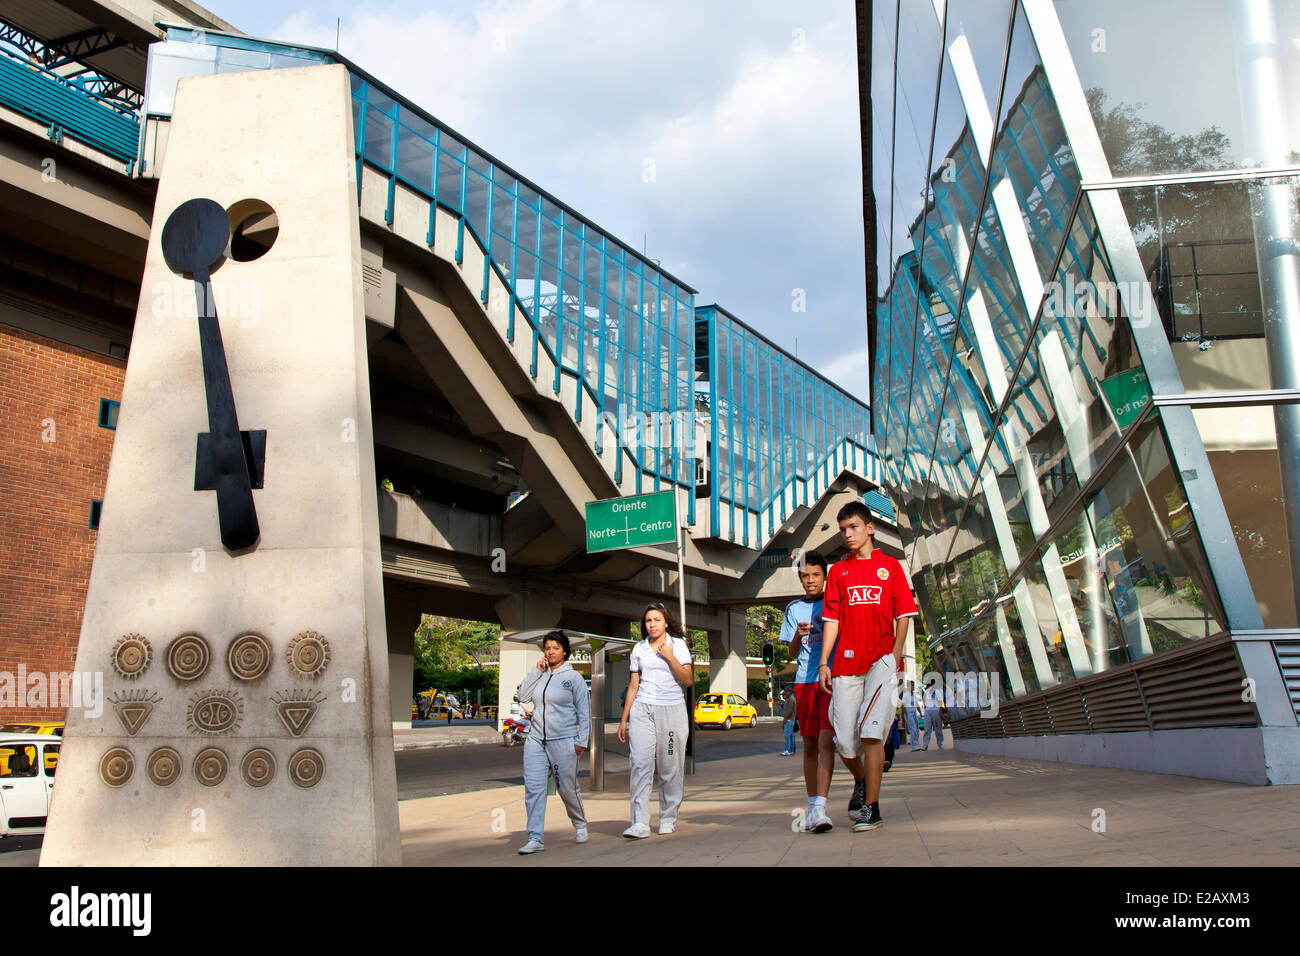 Colombia, Antioquia Department, Medellin, crossroads in the modern center overhanging by the structure of a metro - Stock Image